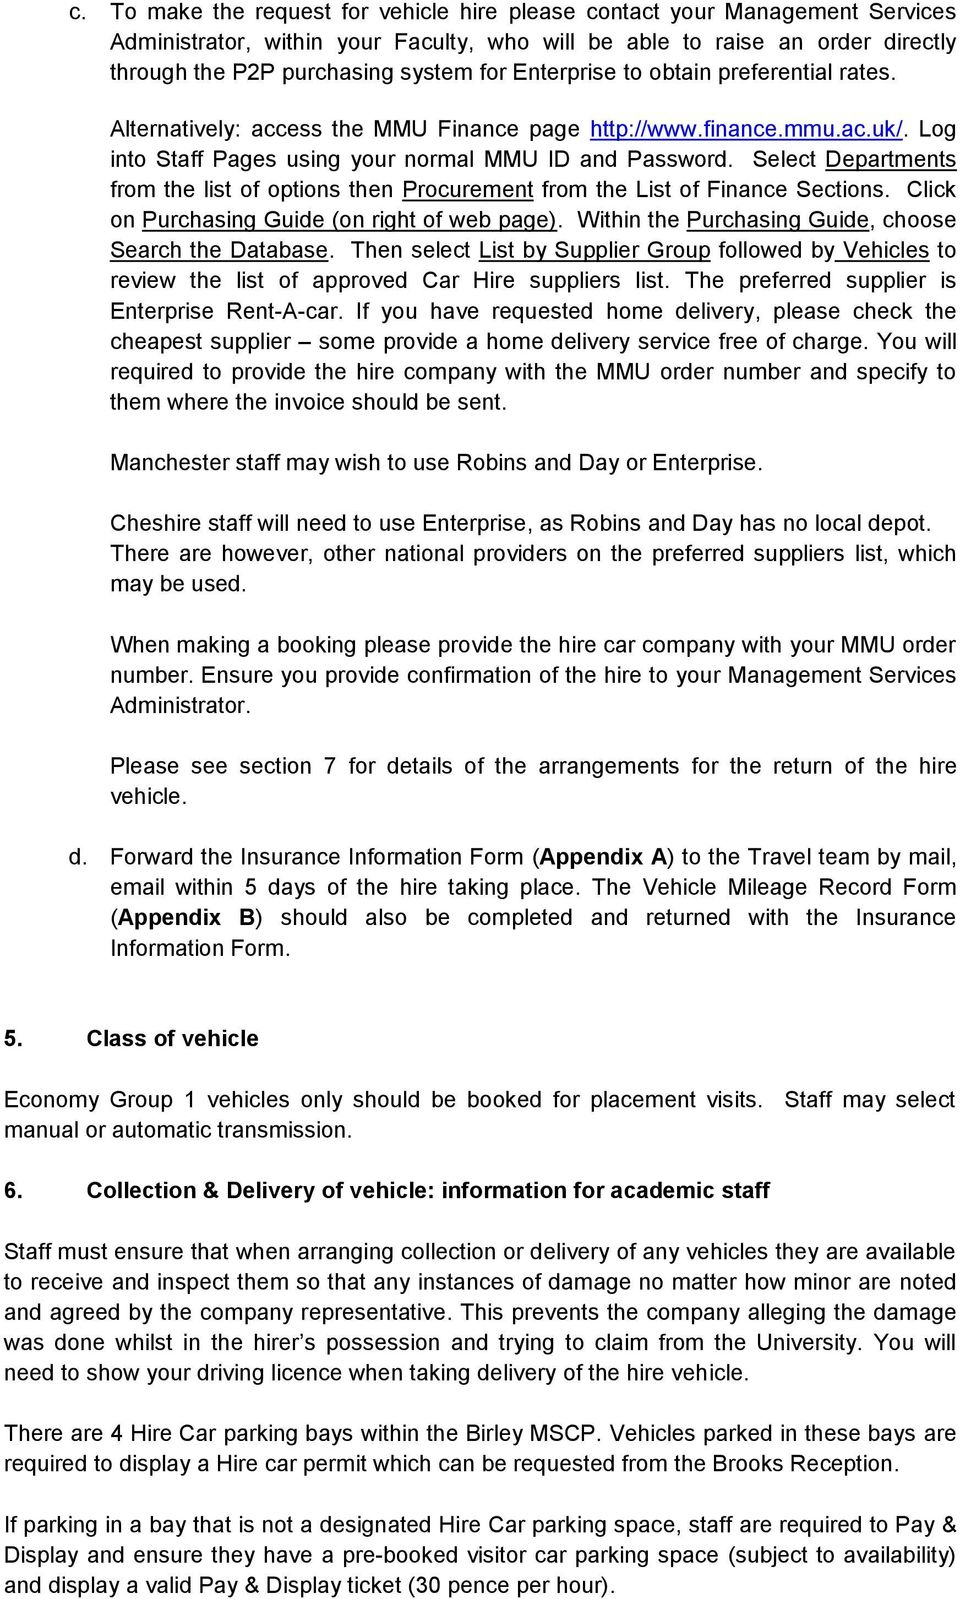 MMU Vehicle Hire Policy: Information for Staff booking